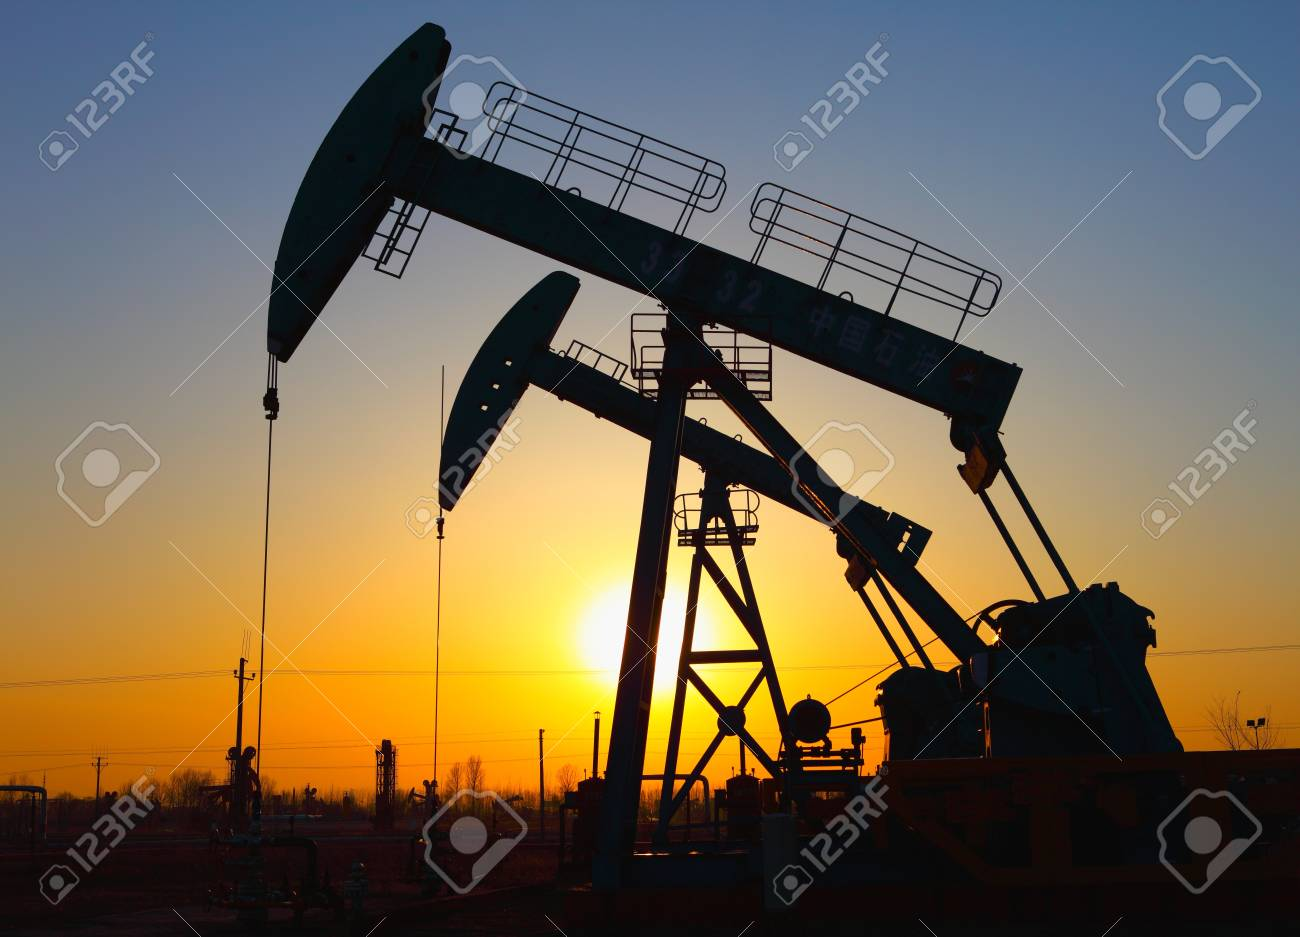 Oil pumps  Oil industry equipment Stock Photo - 17140130